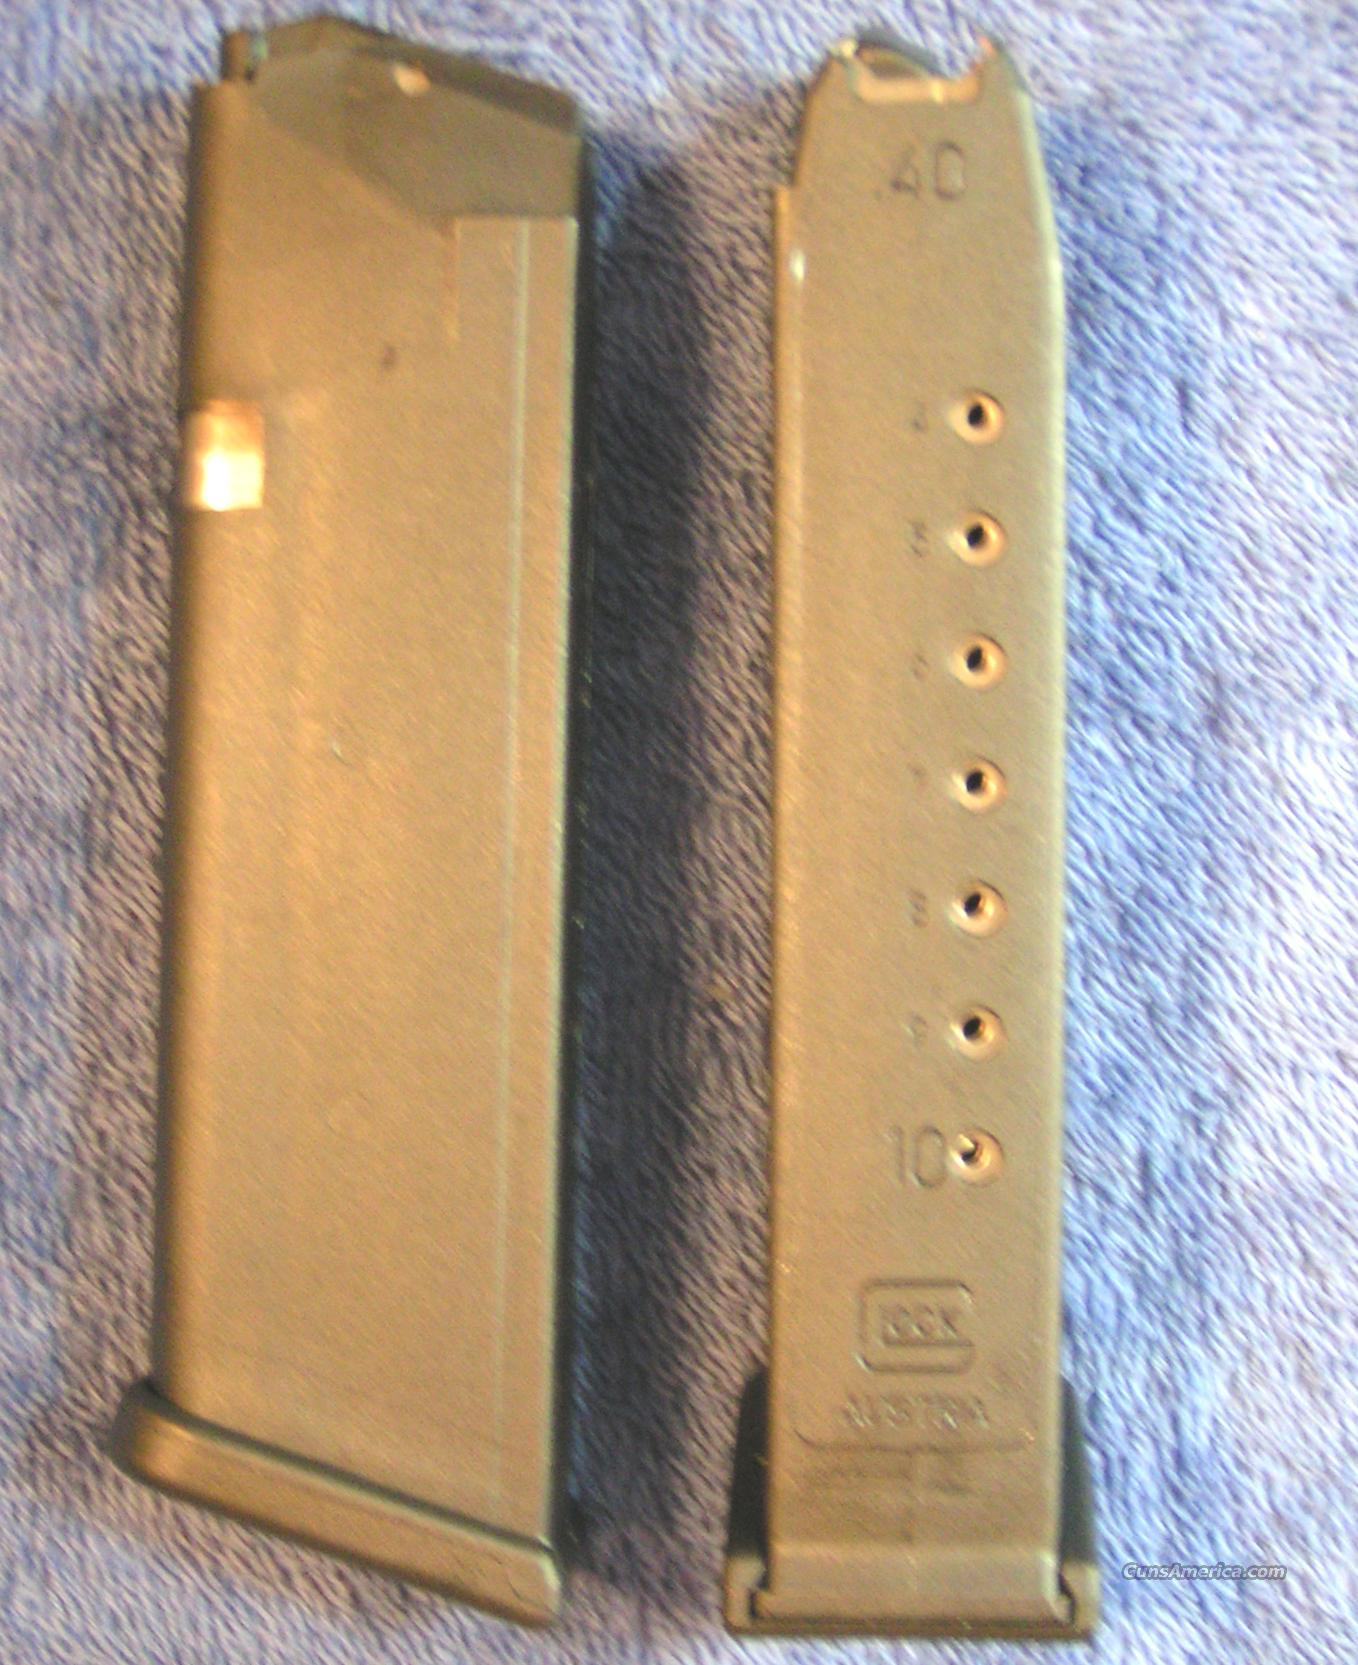 2 Glock 22 mags 10 rd 40S&W factory new  Non-Guns > Magazines & Clips > Pistol Magazines > Glock